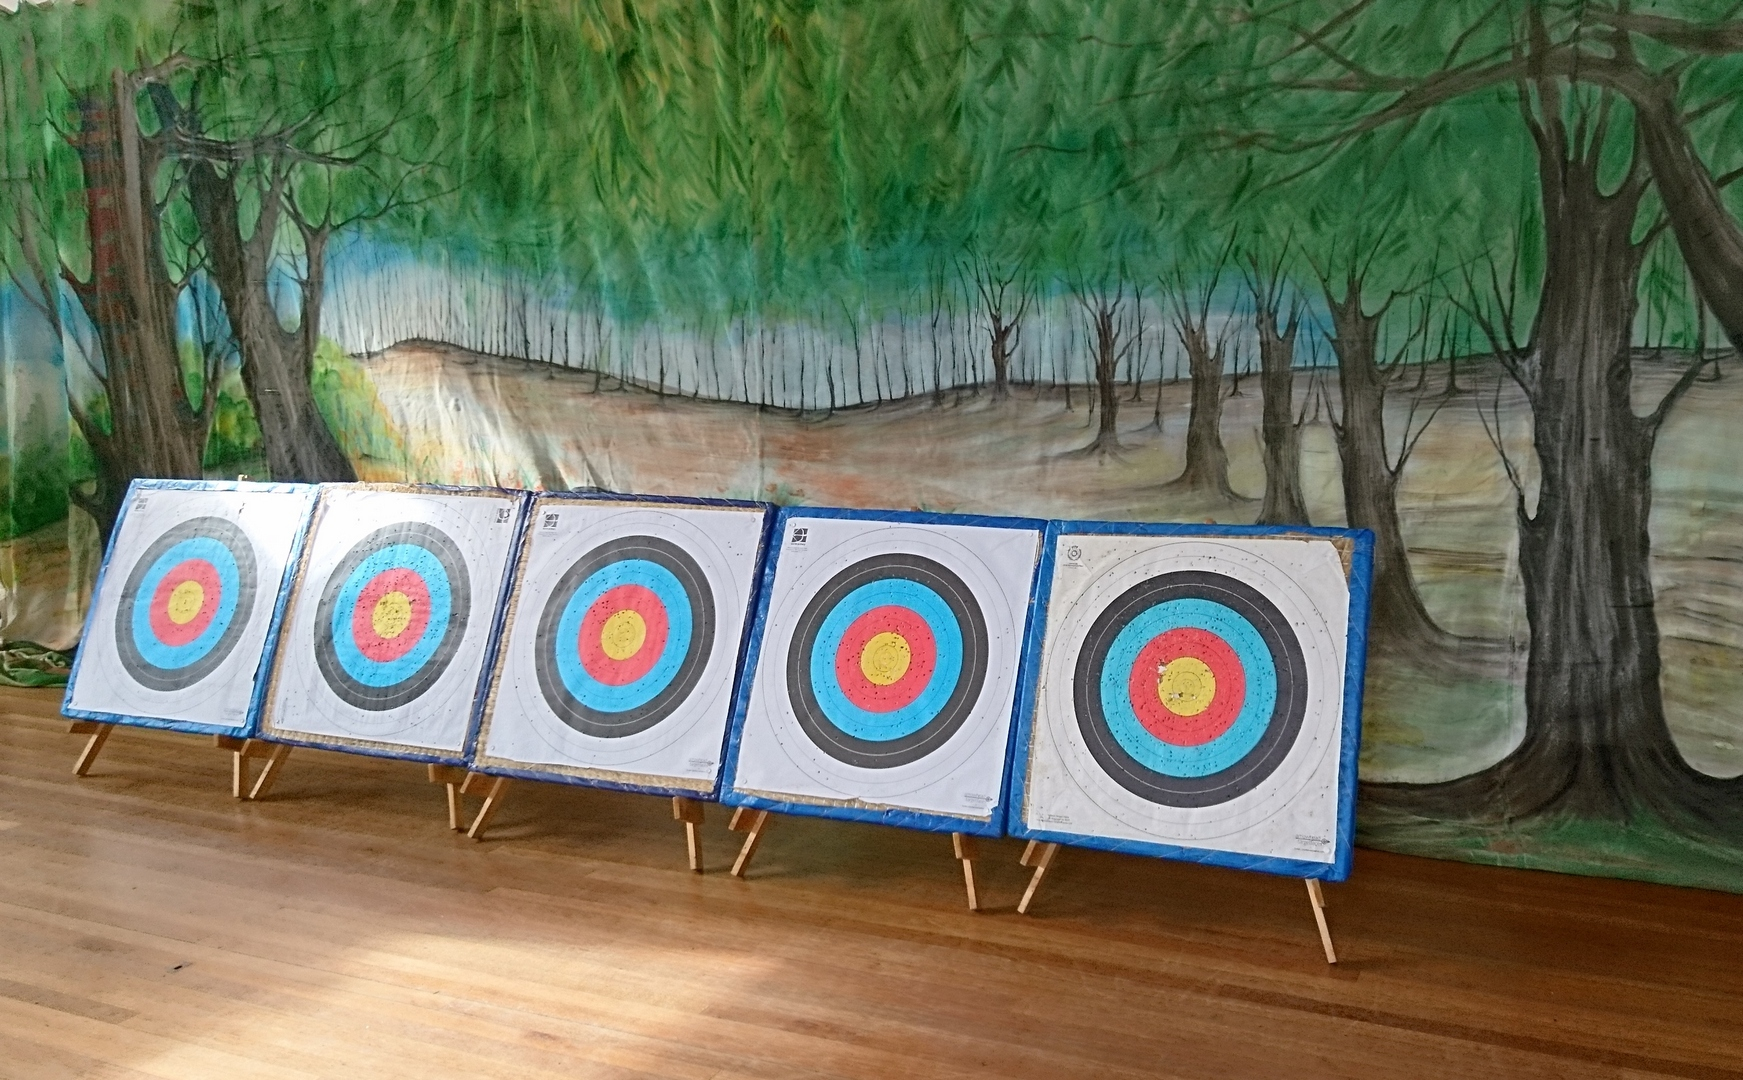 line of archery targets